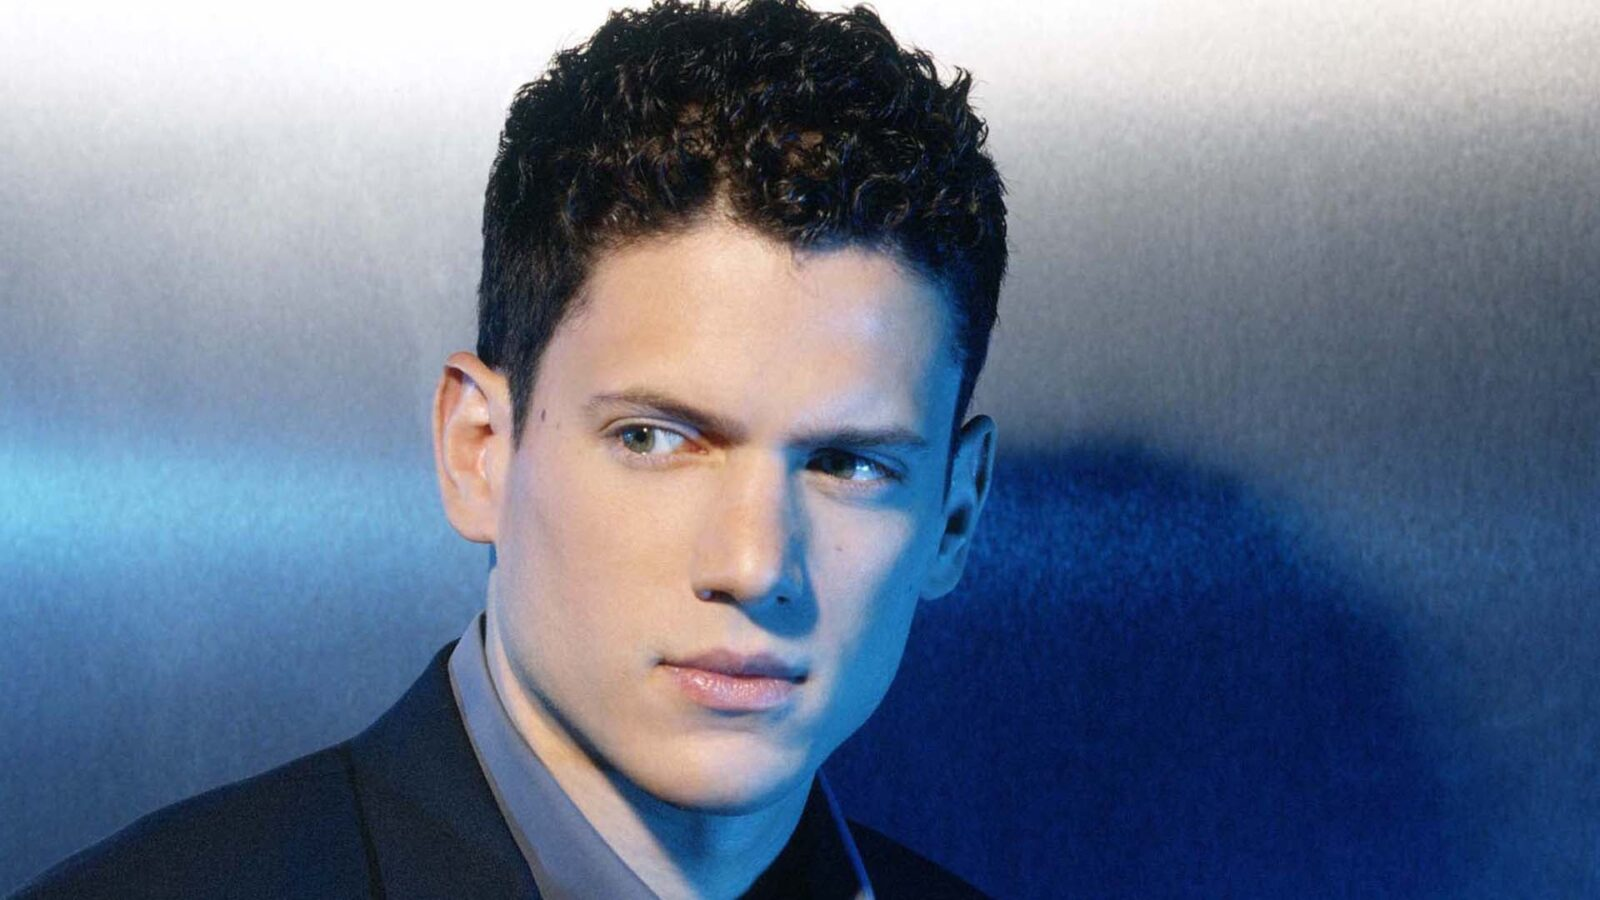 All wallpapers of Wentworth Miller for iPhone, Android